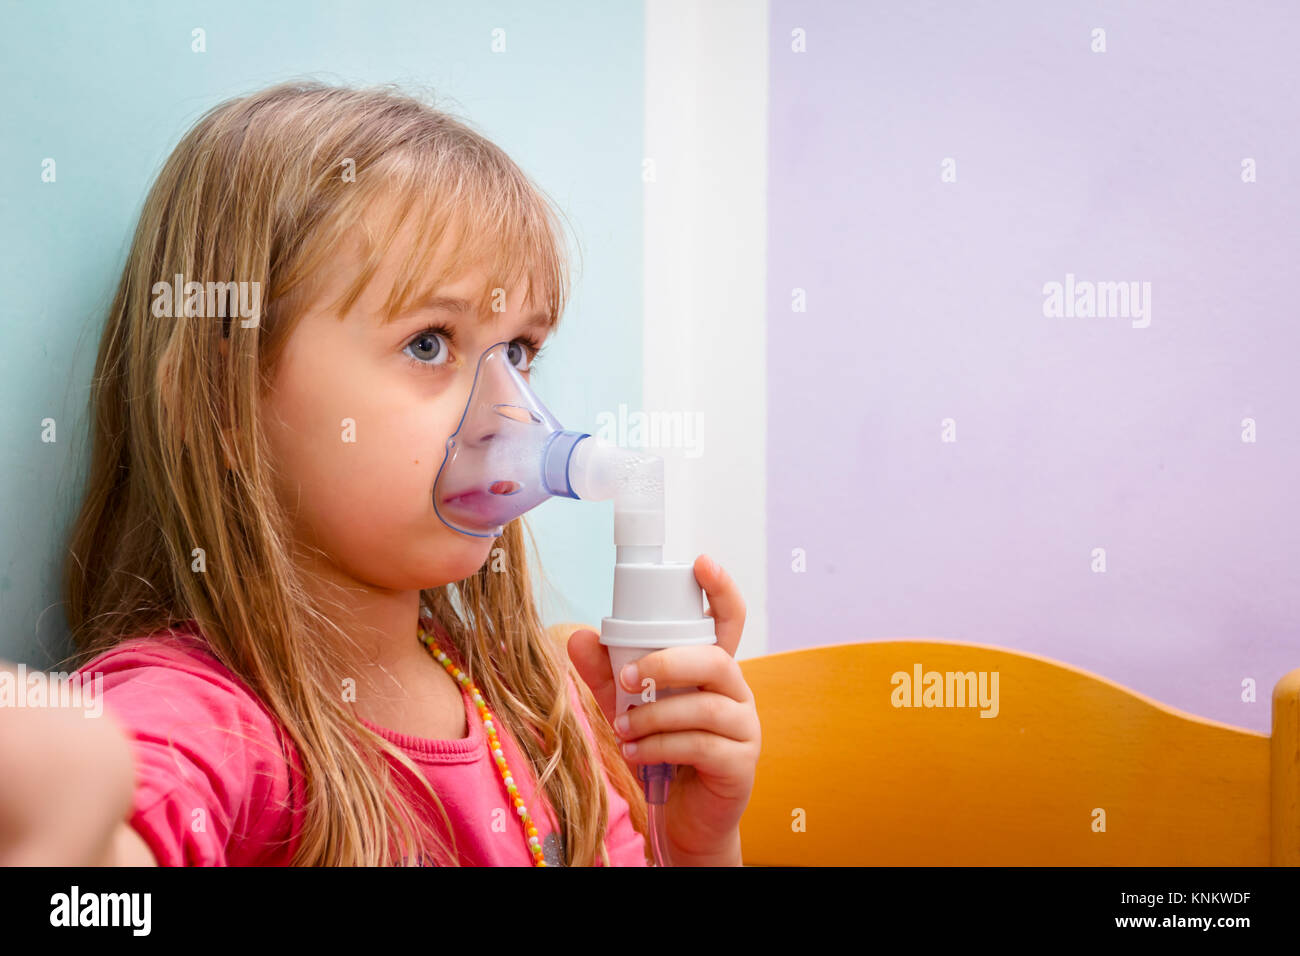 Child with asthmatic problems is take inhalation with mask on her face. - Stock Image